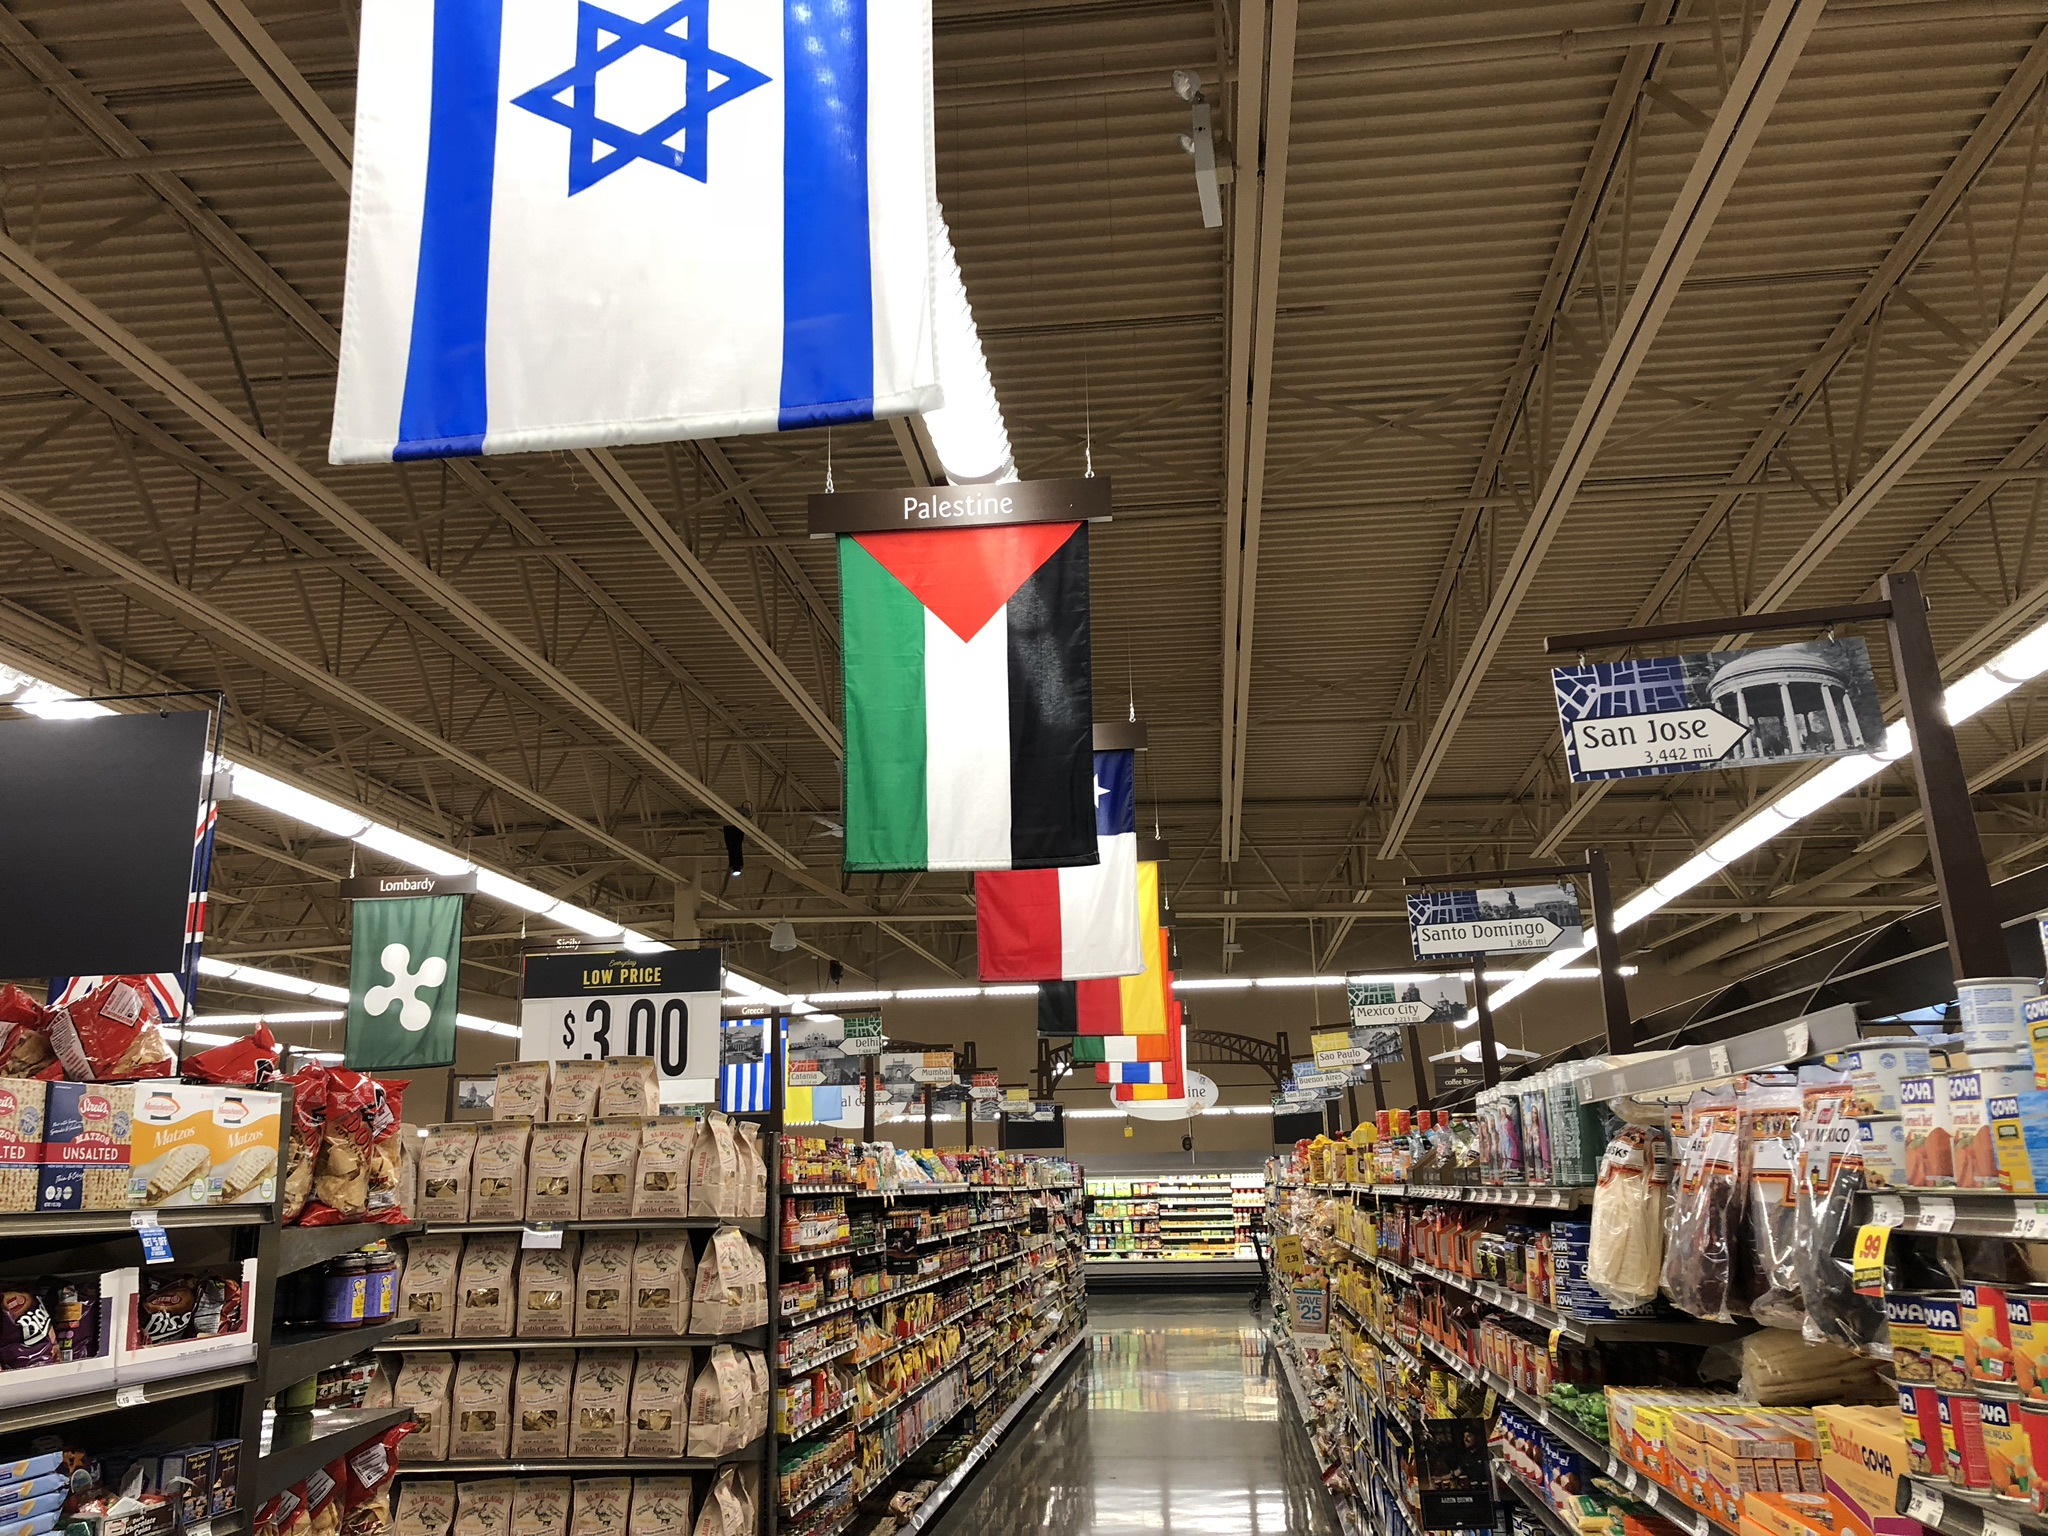 Mariano's, which opened in January 2016, flies the Palestine Flag over its ethnic food section. Photo courtesy of Ray Hanania